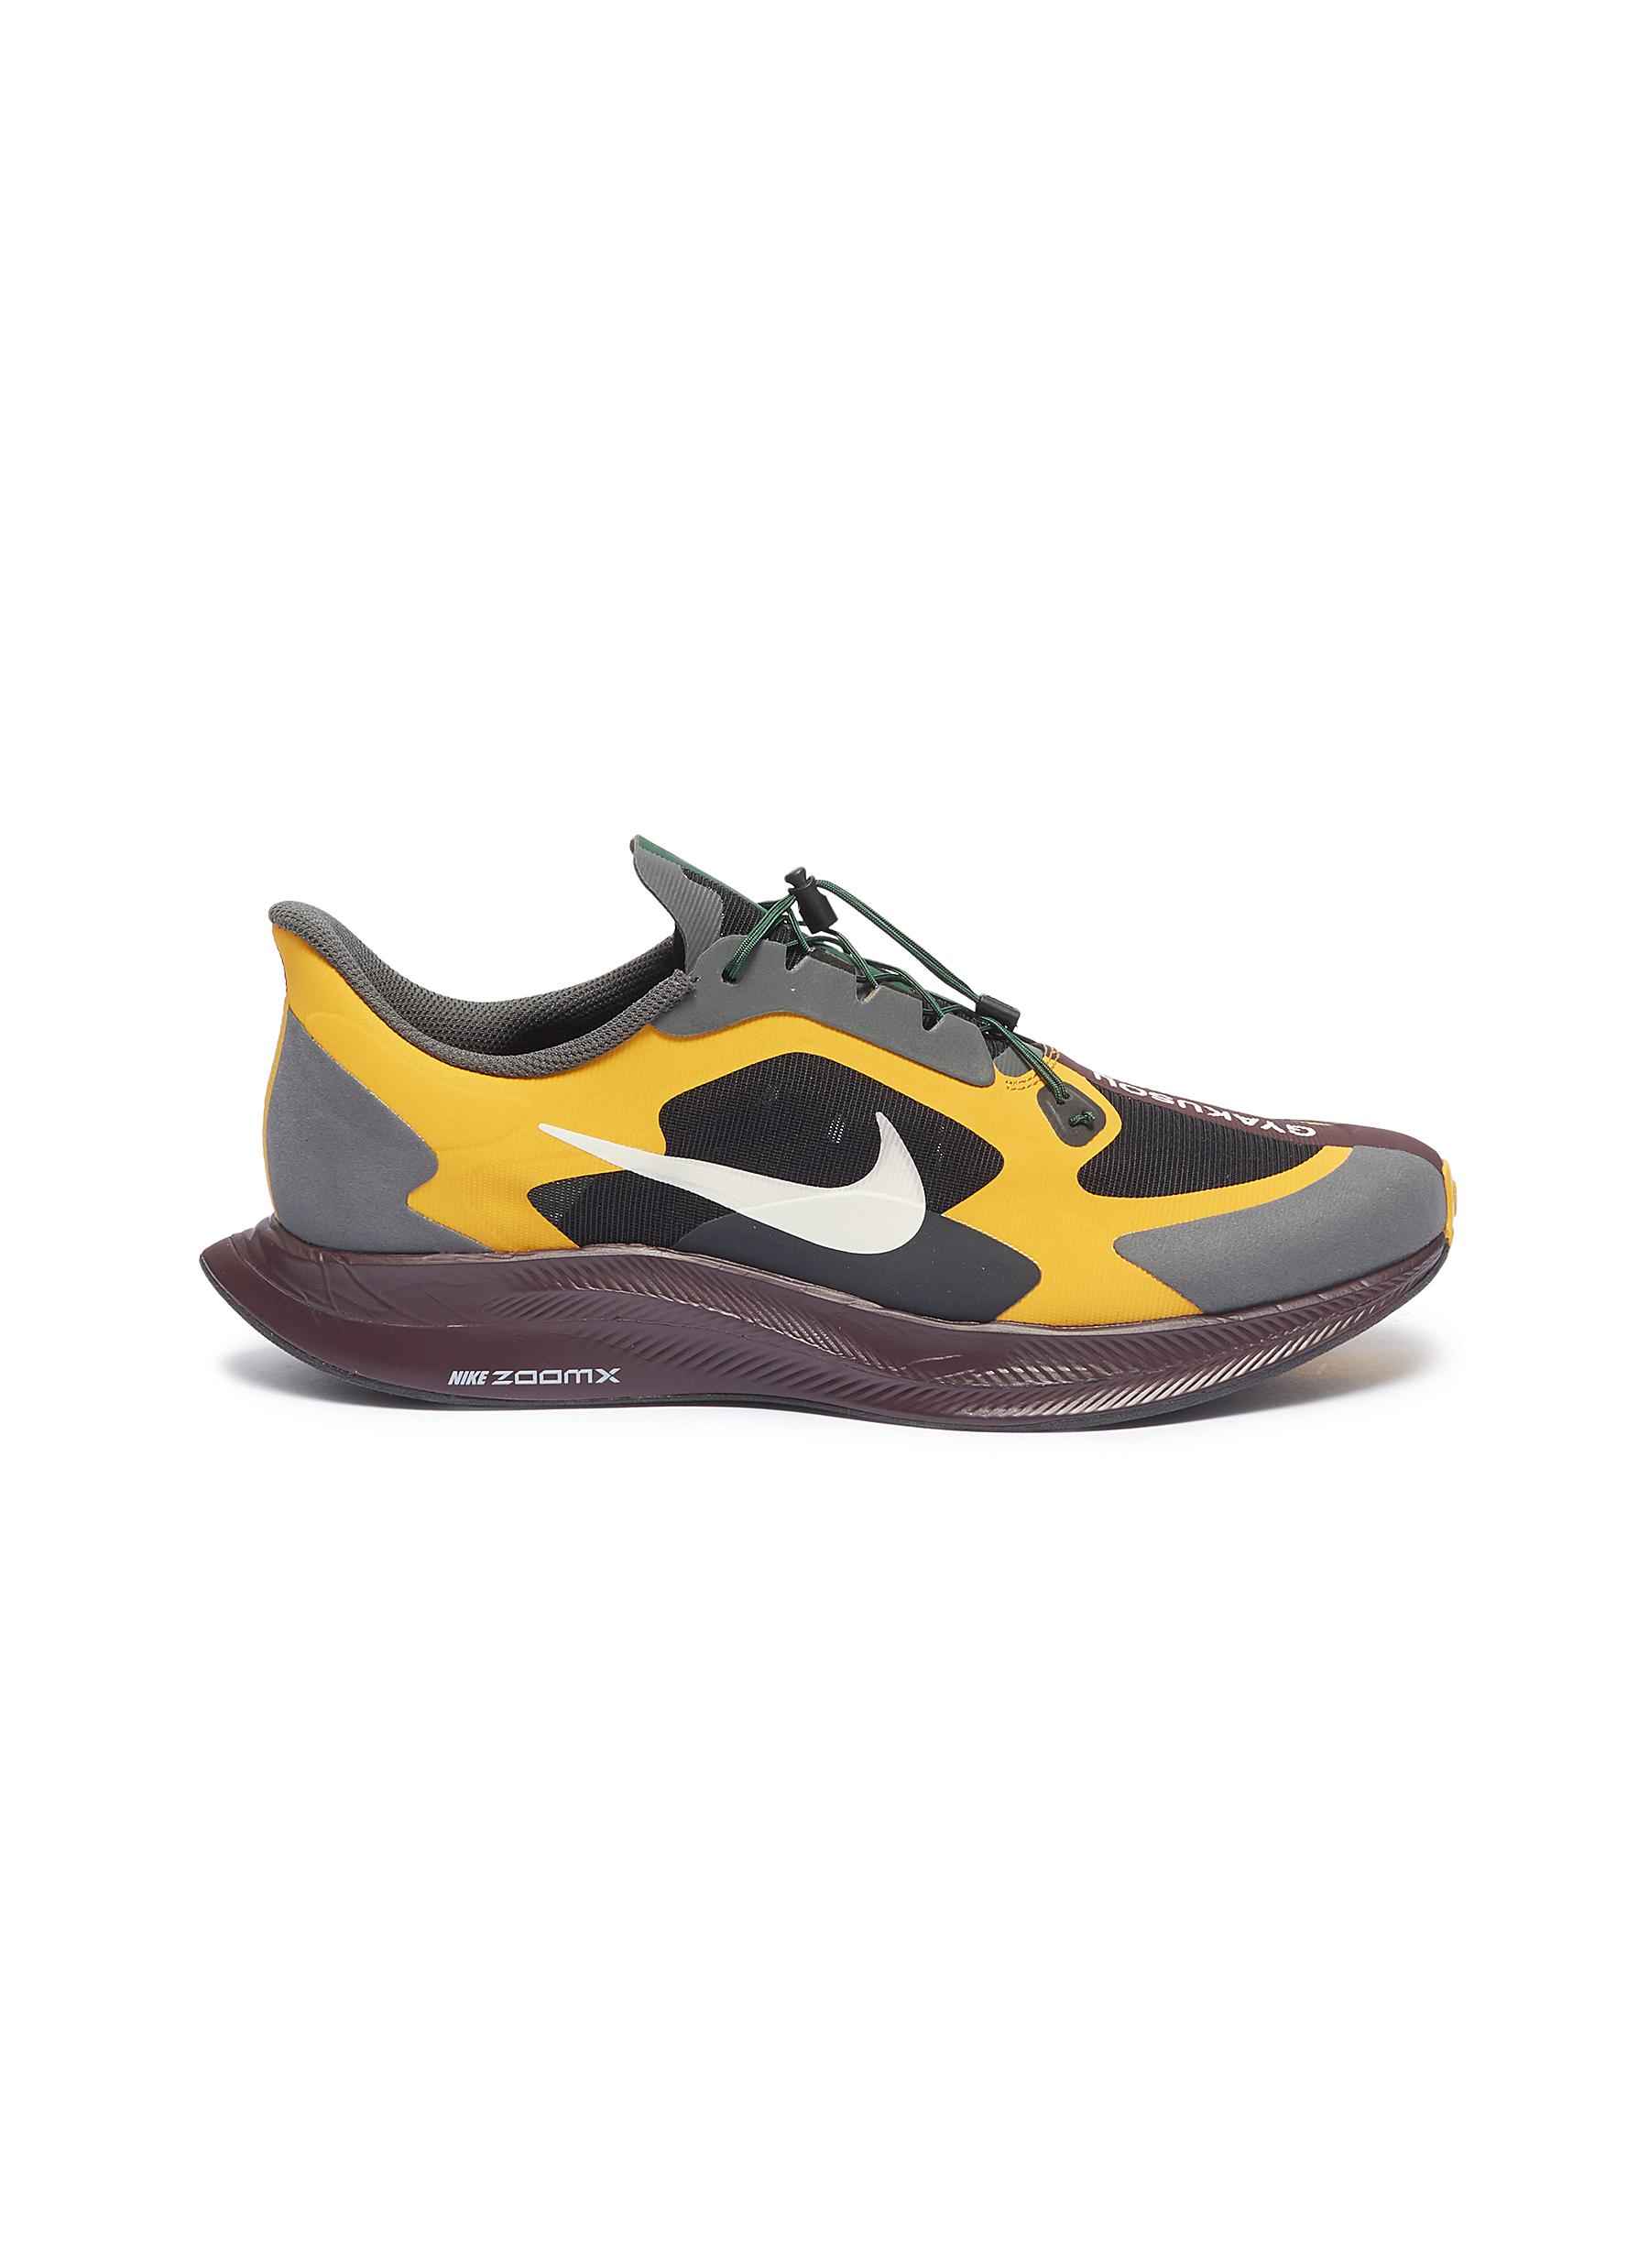 5a82192d263b Main View - Click To Enlarge - Nike - x UNDERCOVER  Air Zoom Pegasus 35